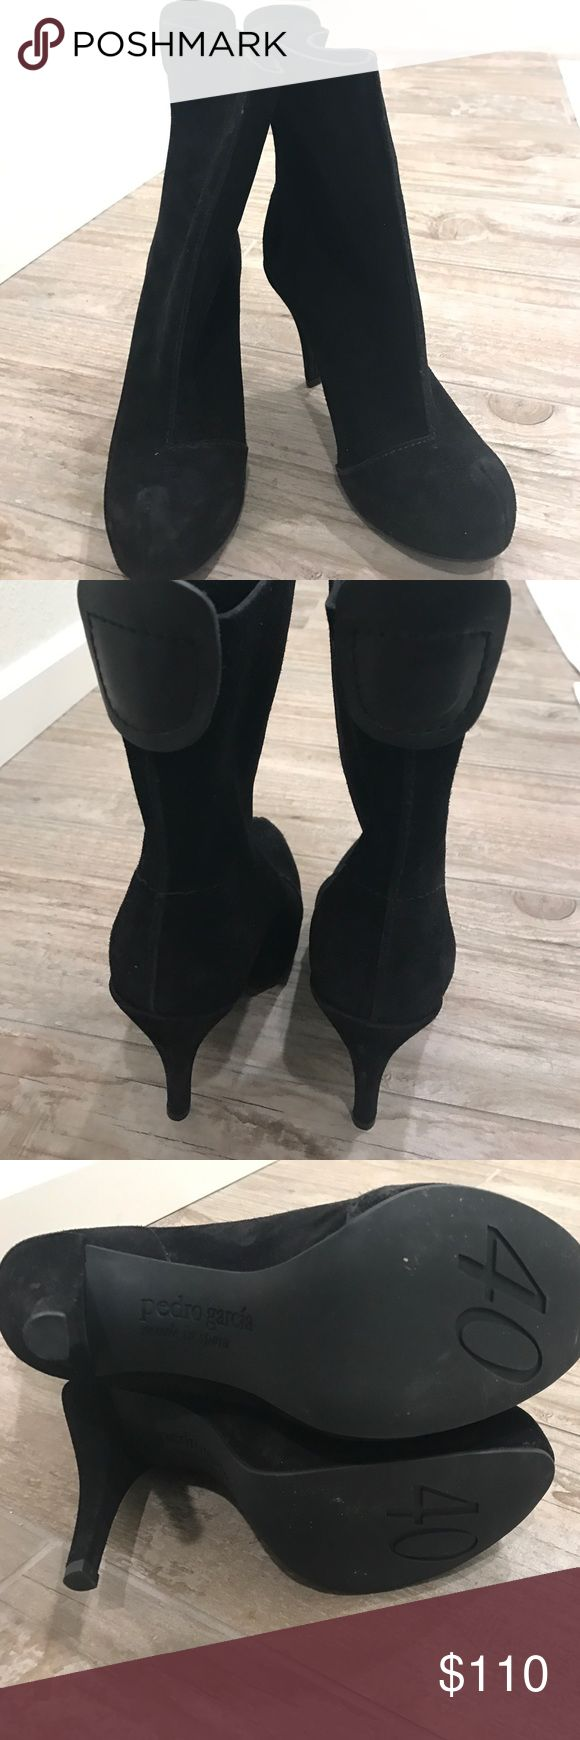 Pedro Garcia bootie Pedro Garcia black booties. Brand new. Size 40 pedro garcia Shoes Ankle Boots & Booties